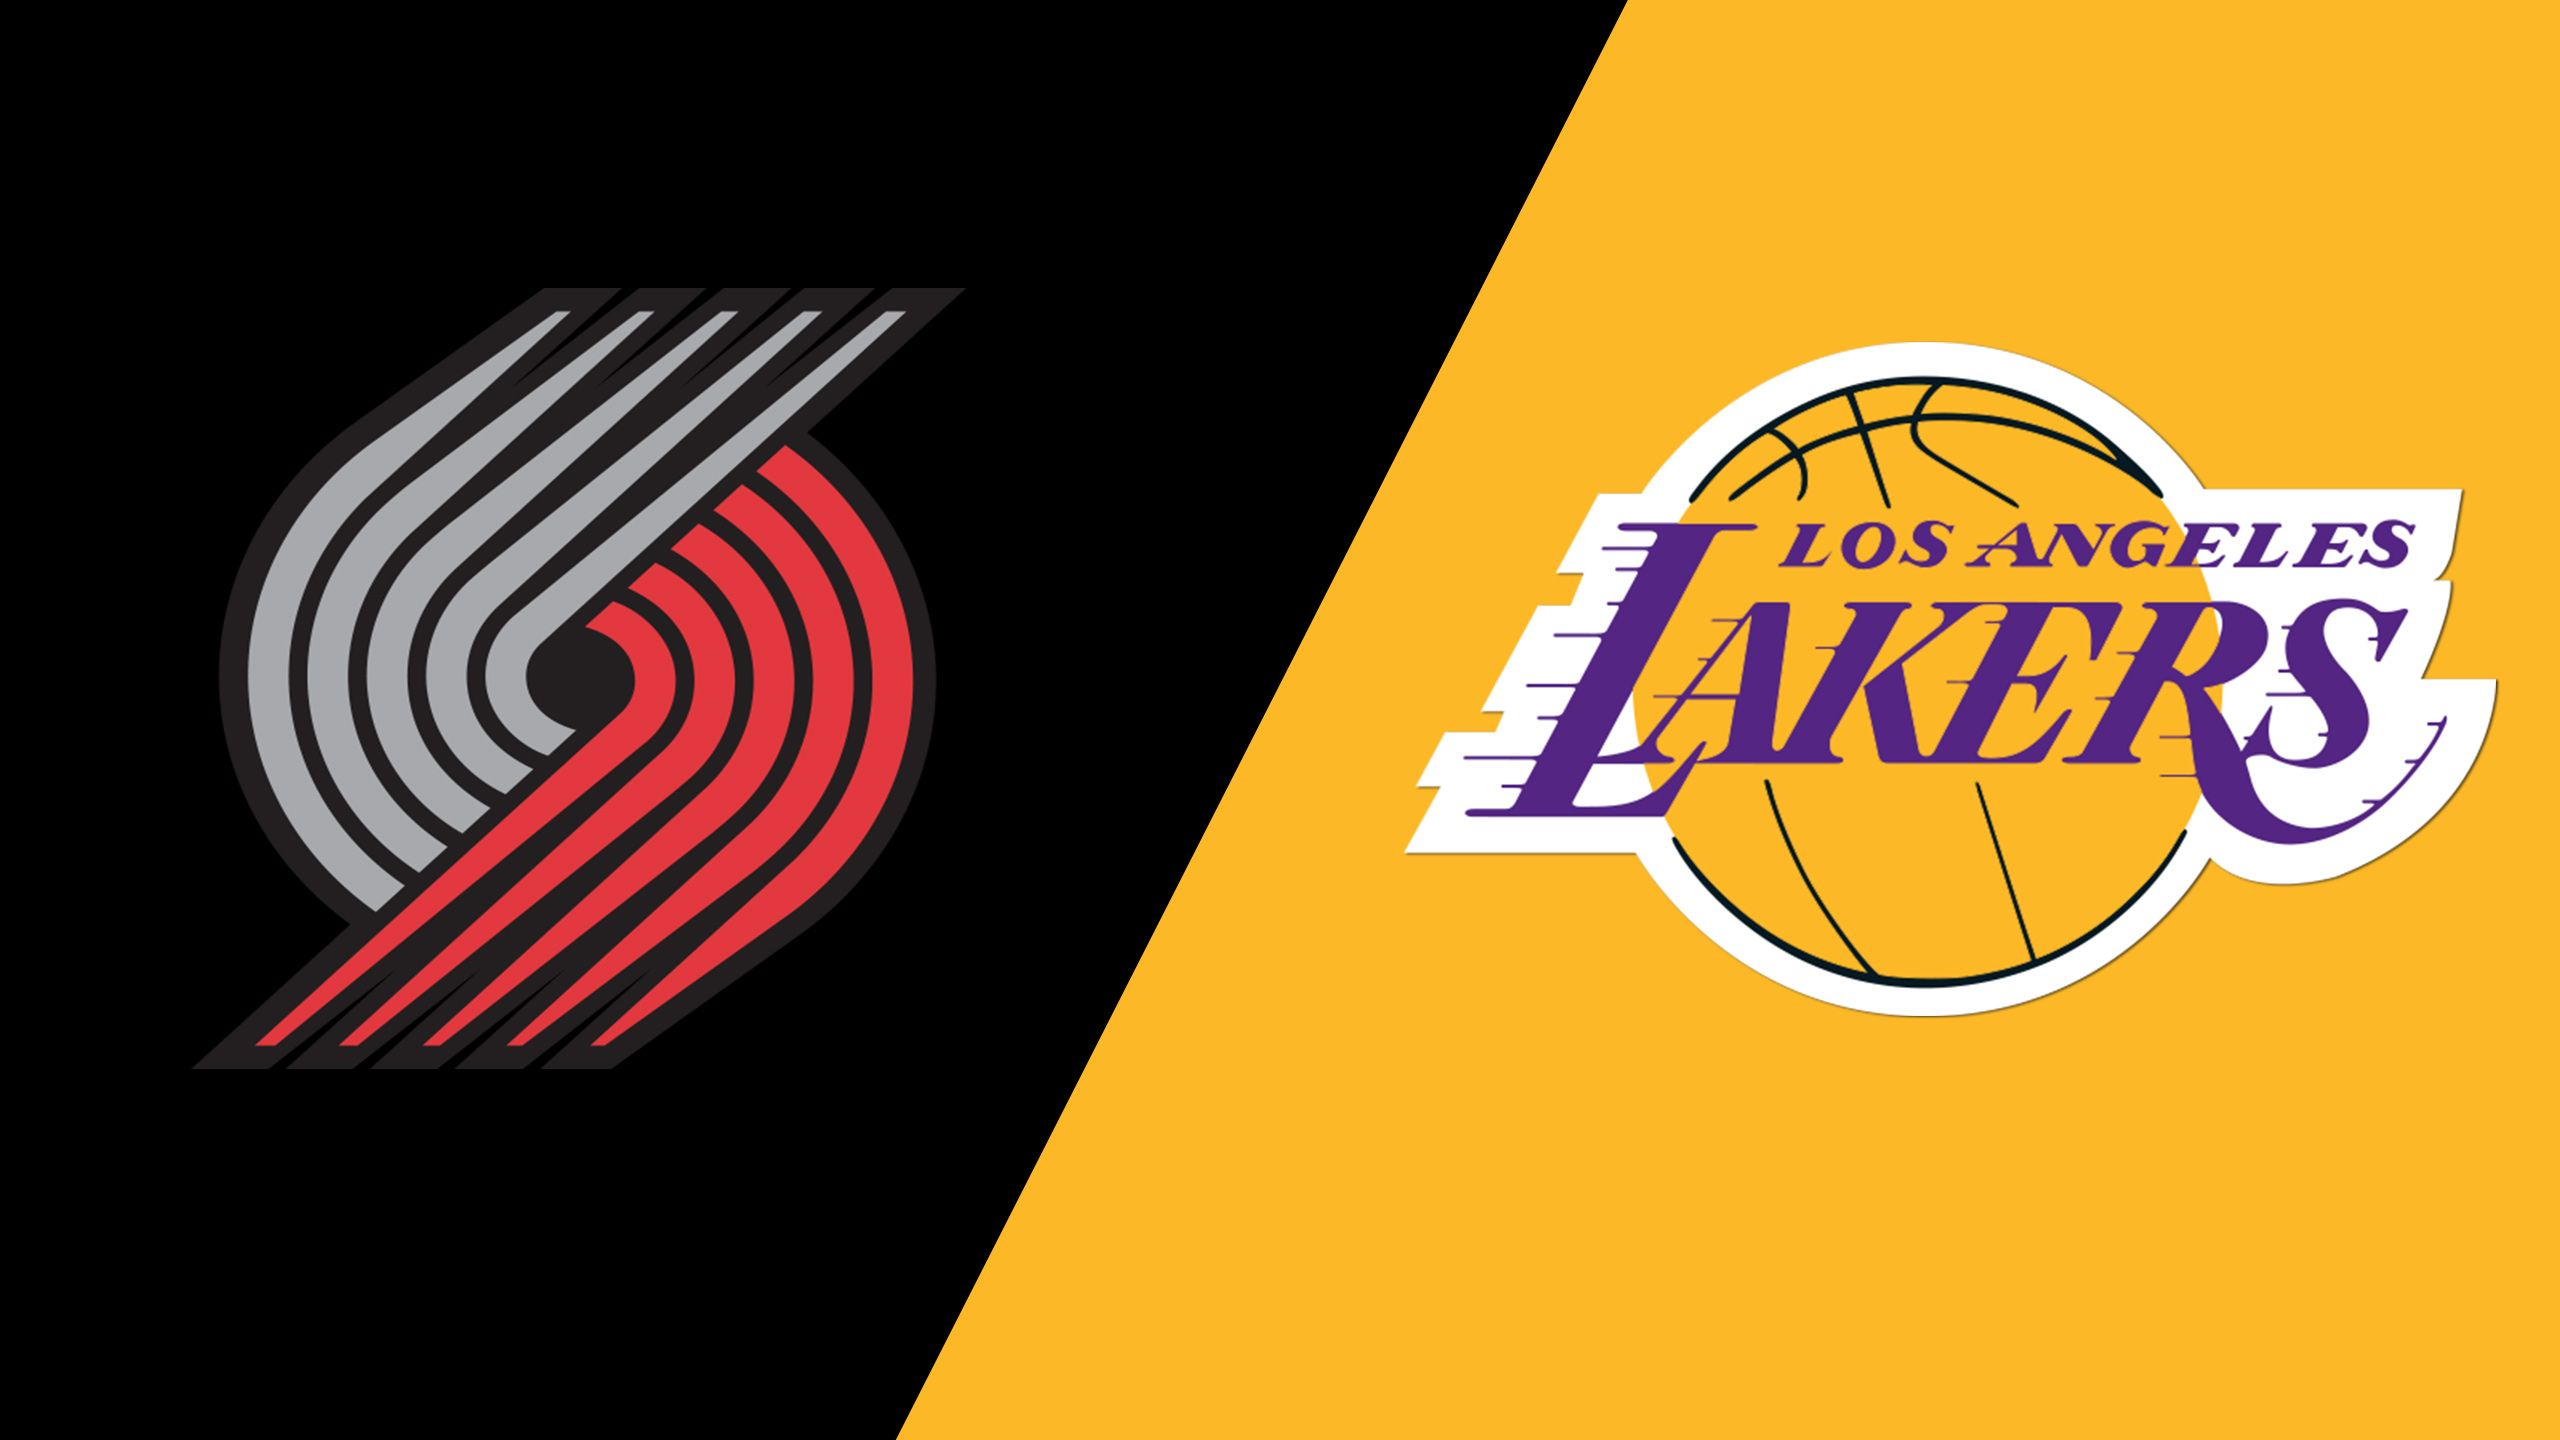 Portland Trail Blazers vs. Los Angeles Lakers (Championship)